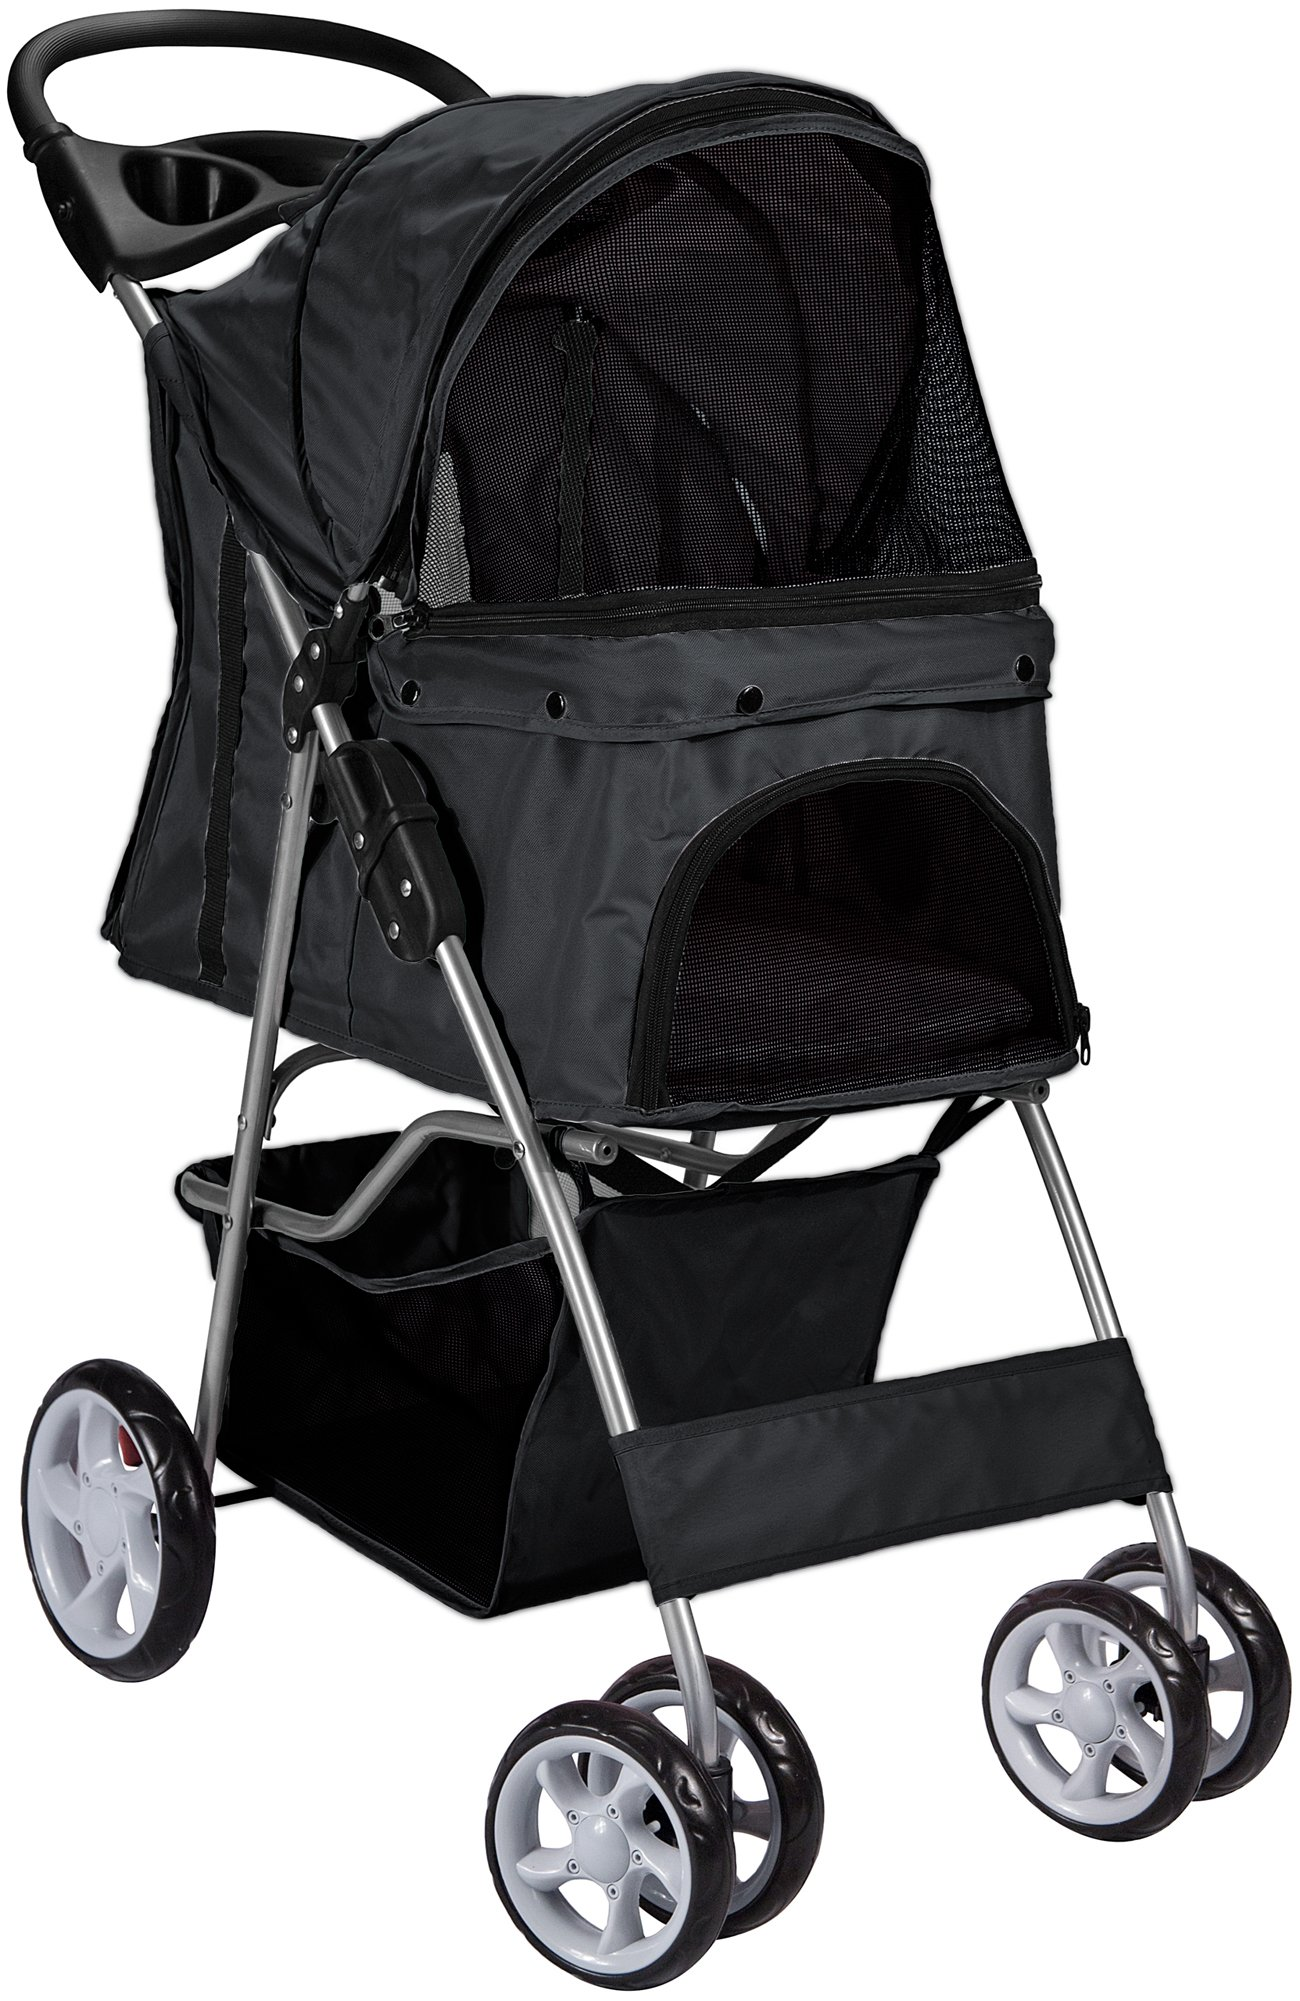 Paws & Pals Pet Stroller Cat/Dog Easy Walk Folding Travel Carrier Carriage, Onyx Black by Paws & Pals (Image #1)